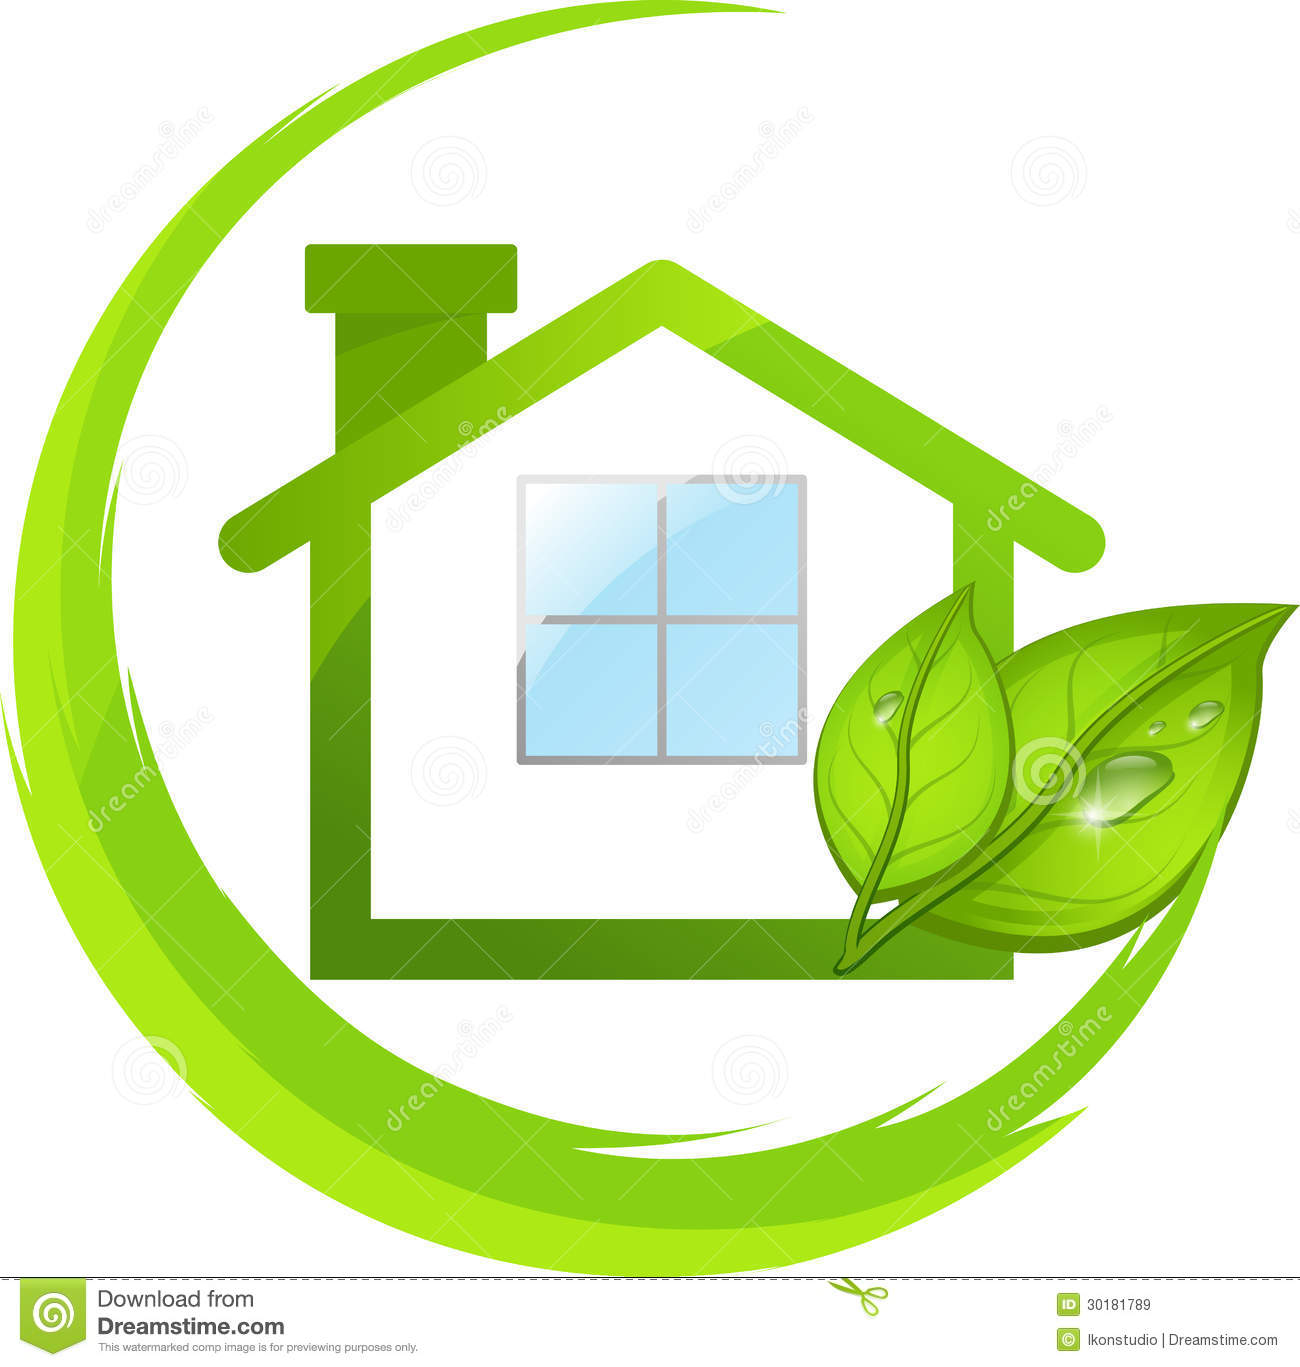 attic office design ideas - Green Logo Eco House With Leafs Royalty Free Stock